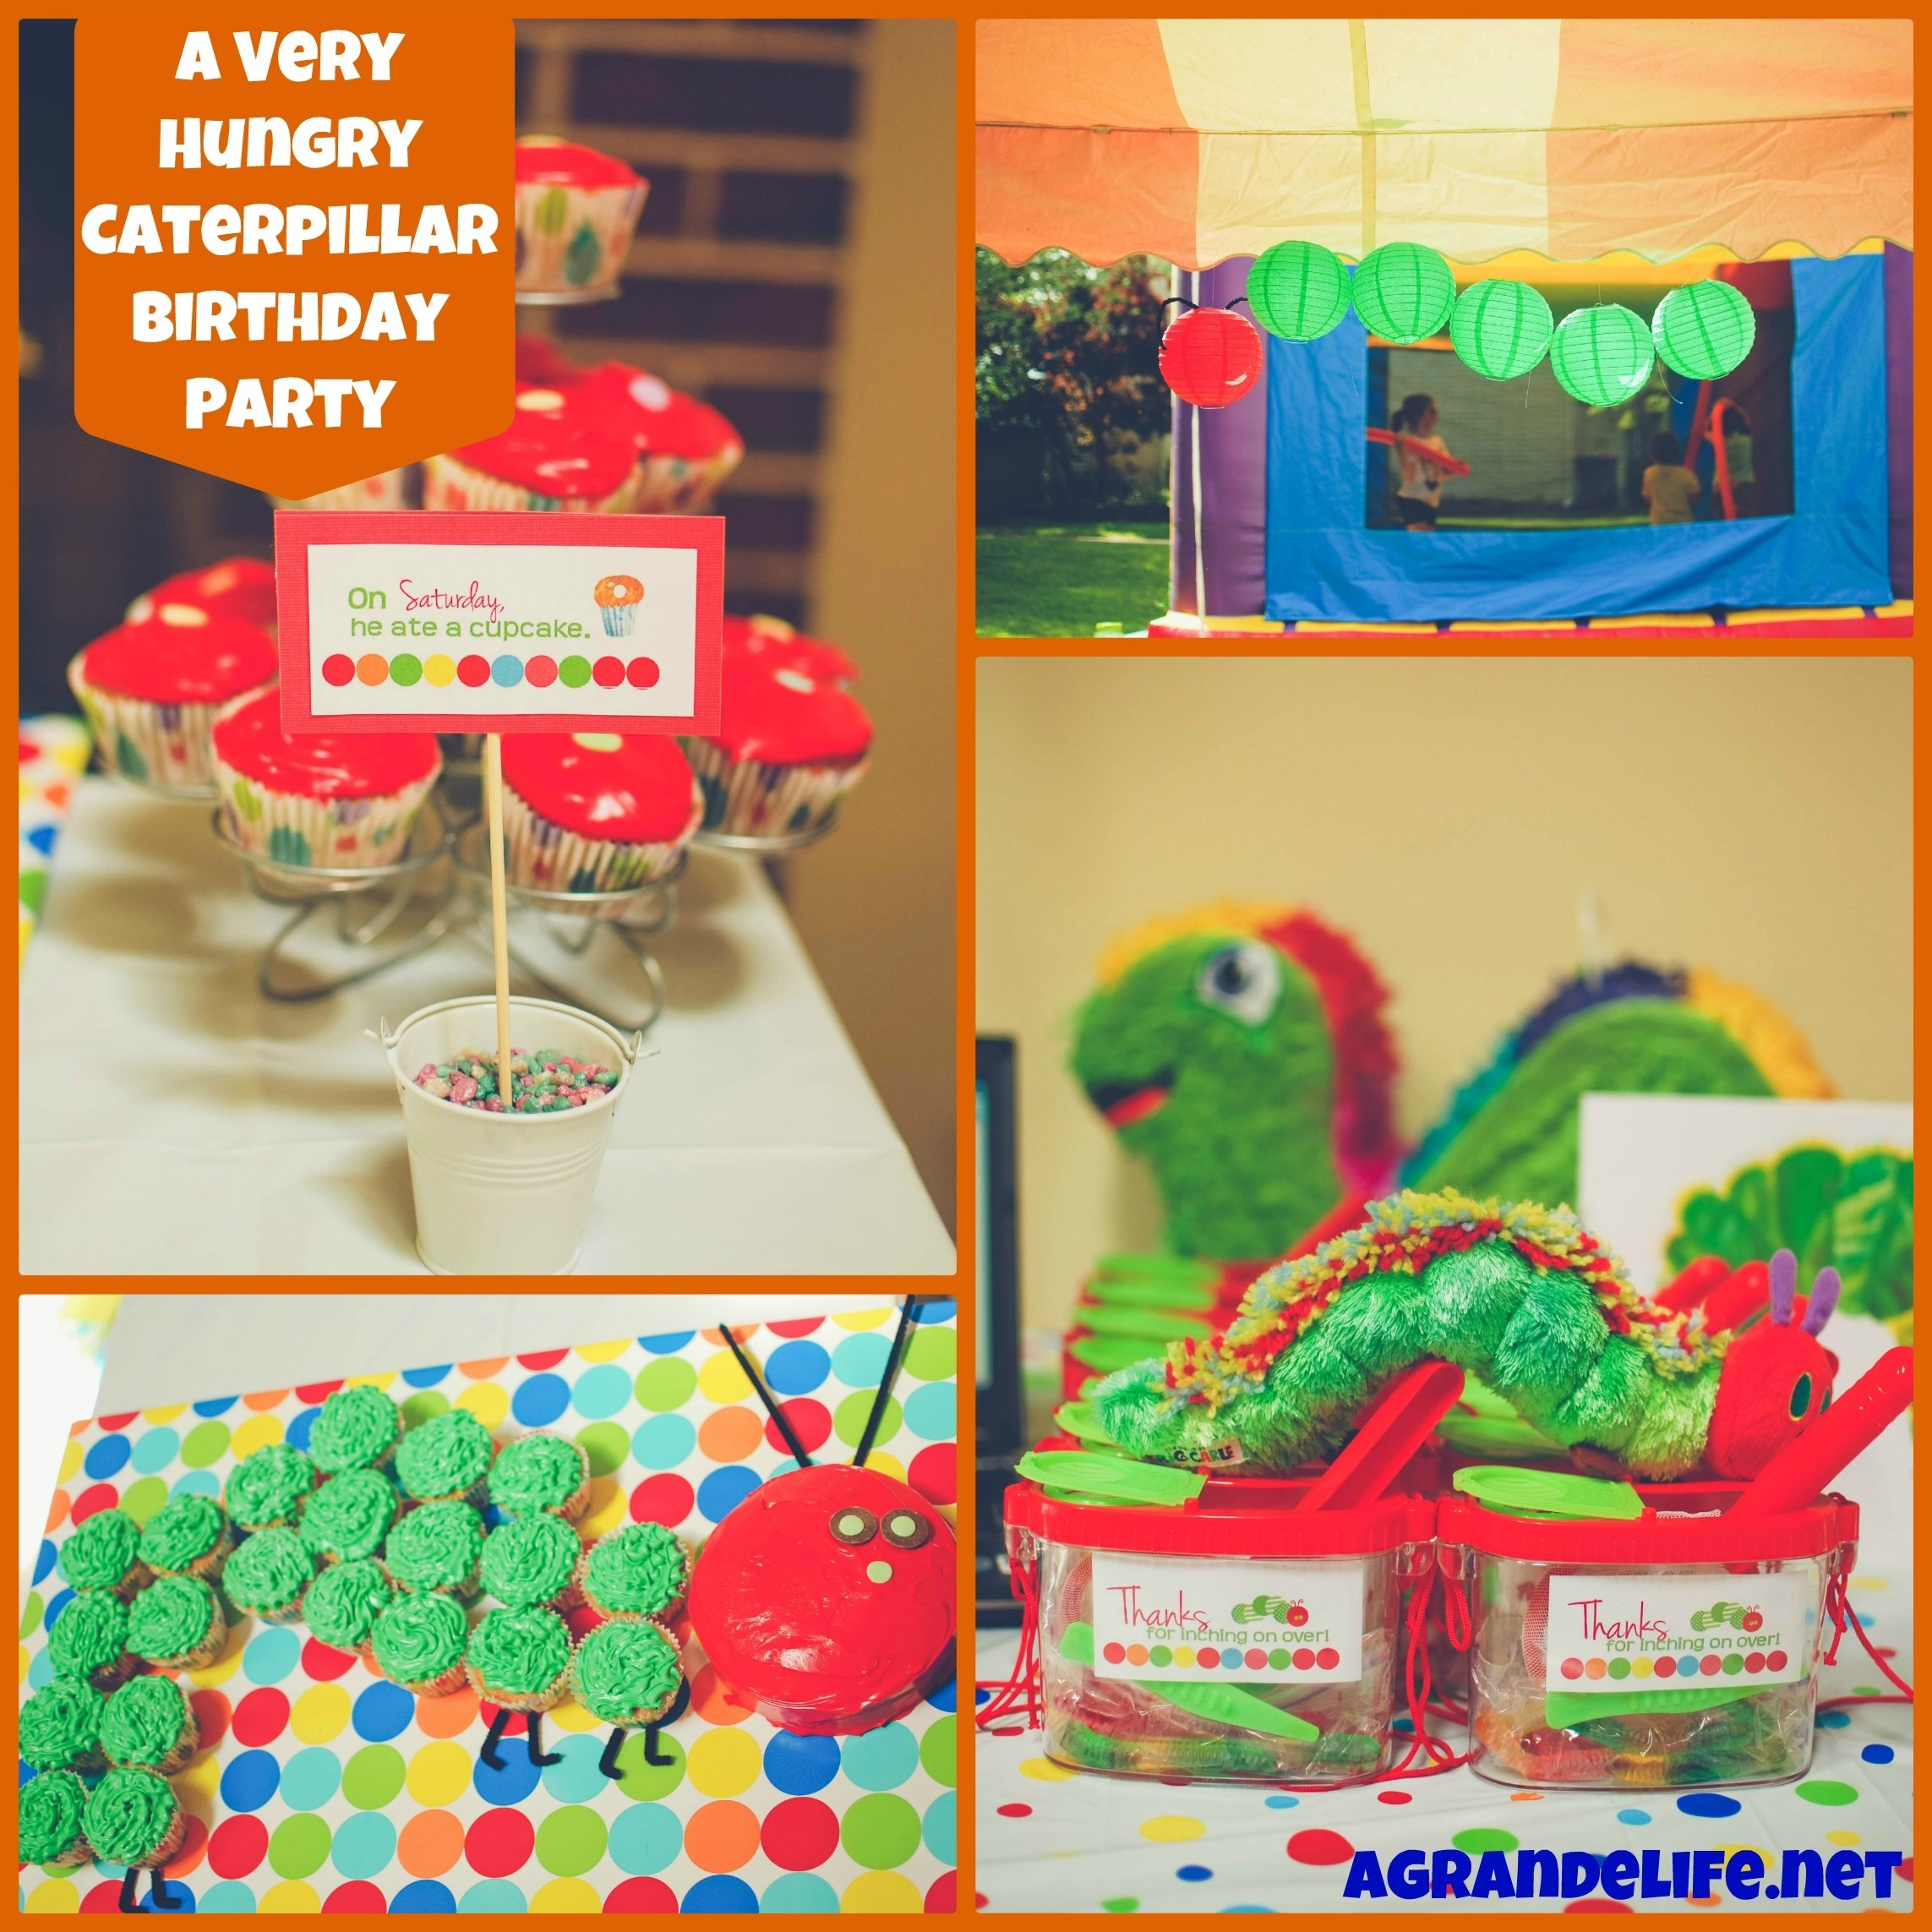 10 Attractive The Very Hungry Caterpillar Party Ideas very hungry caterpillar birthday party 2020